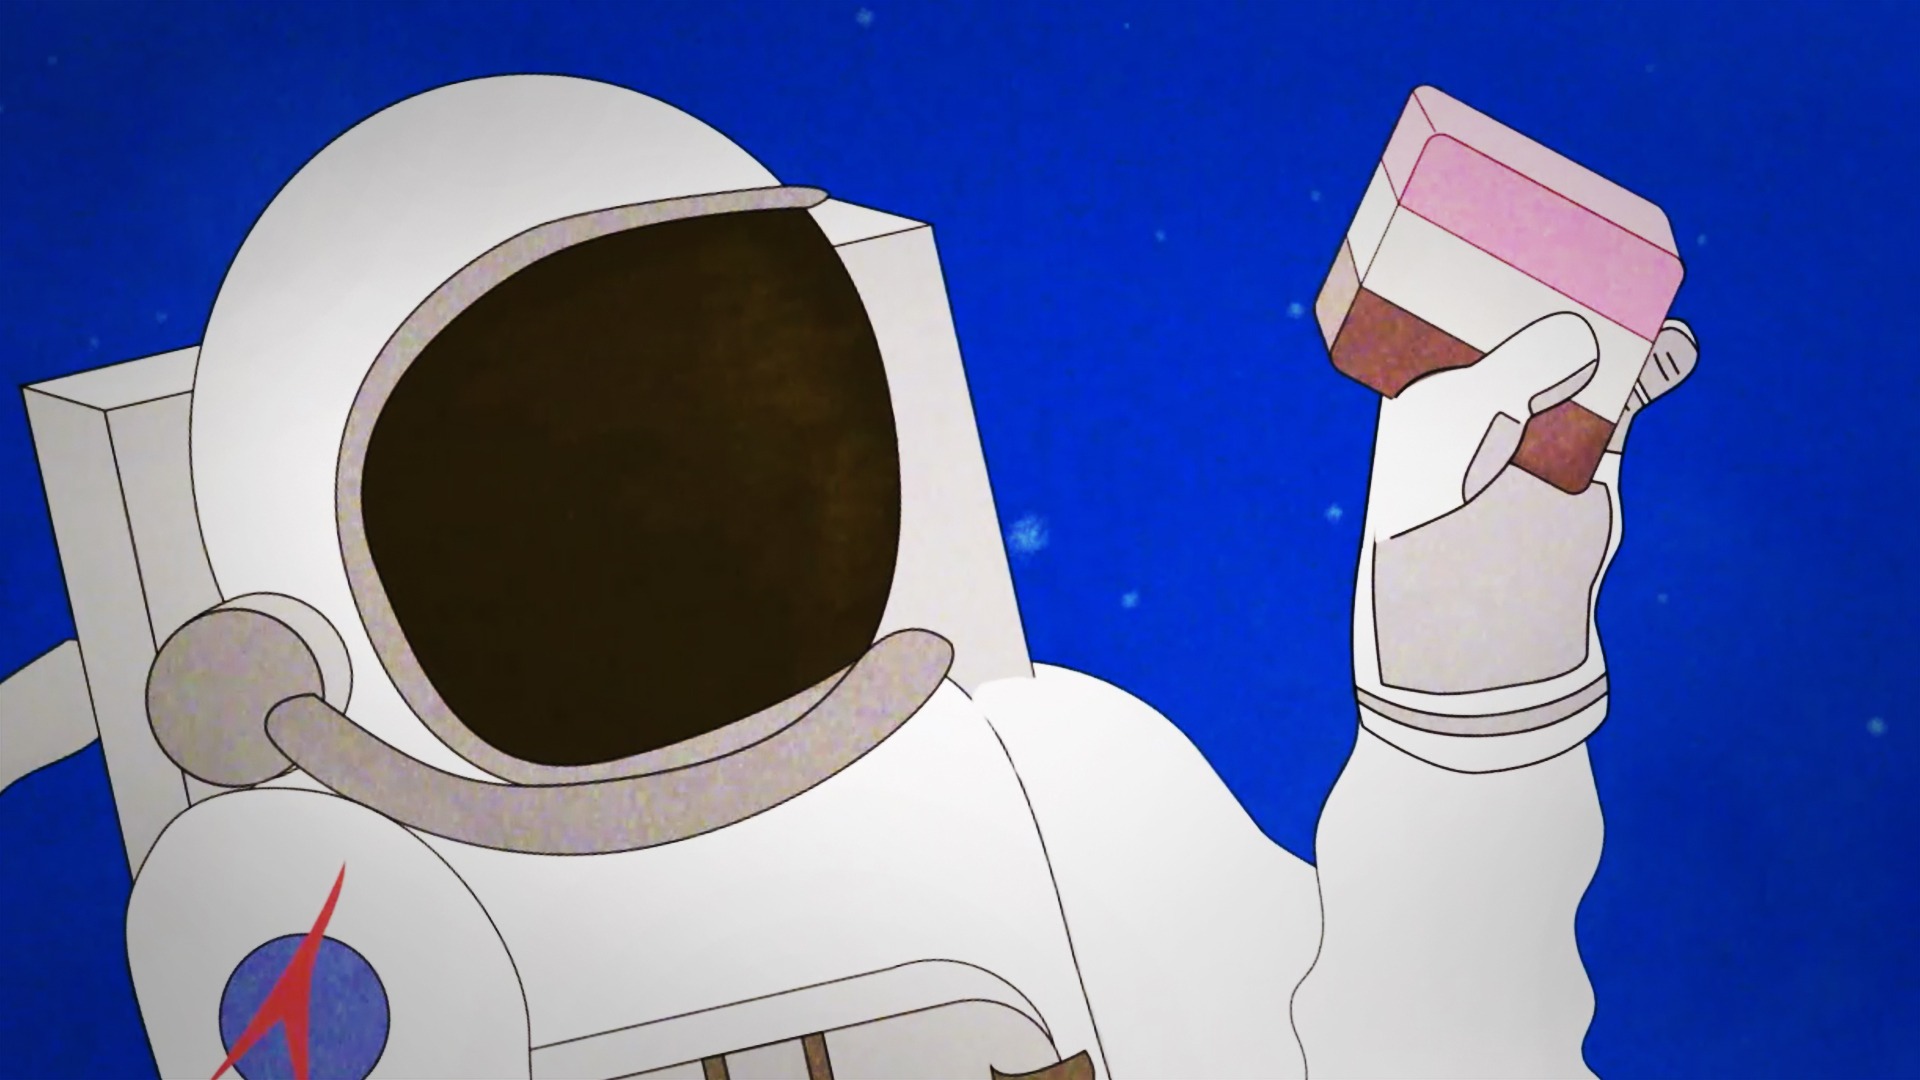 Astronaut ice cream is a lie.